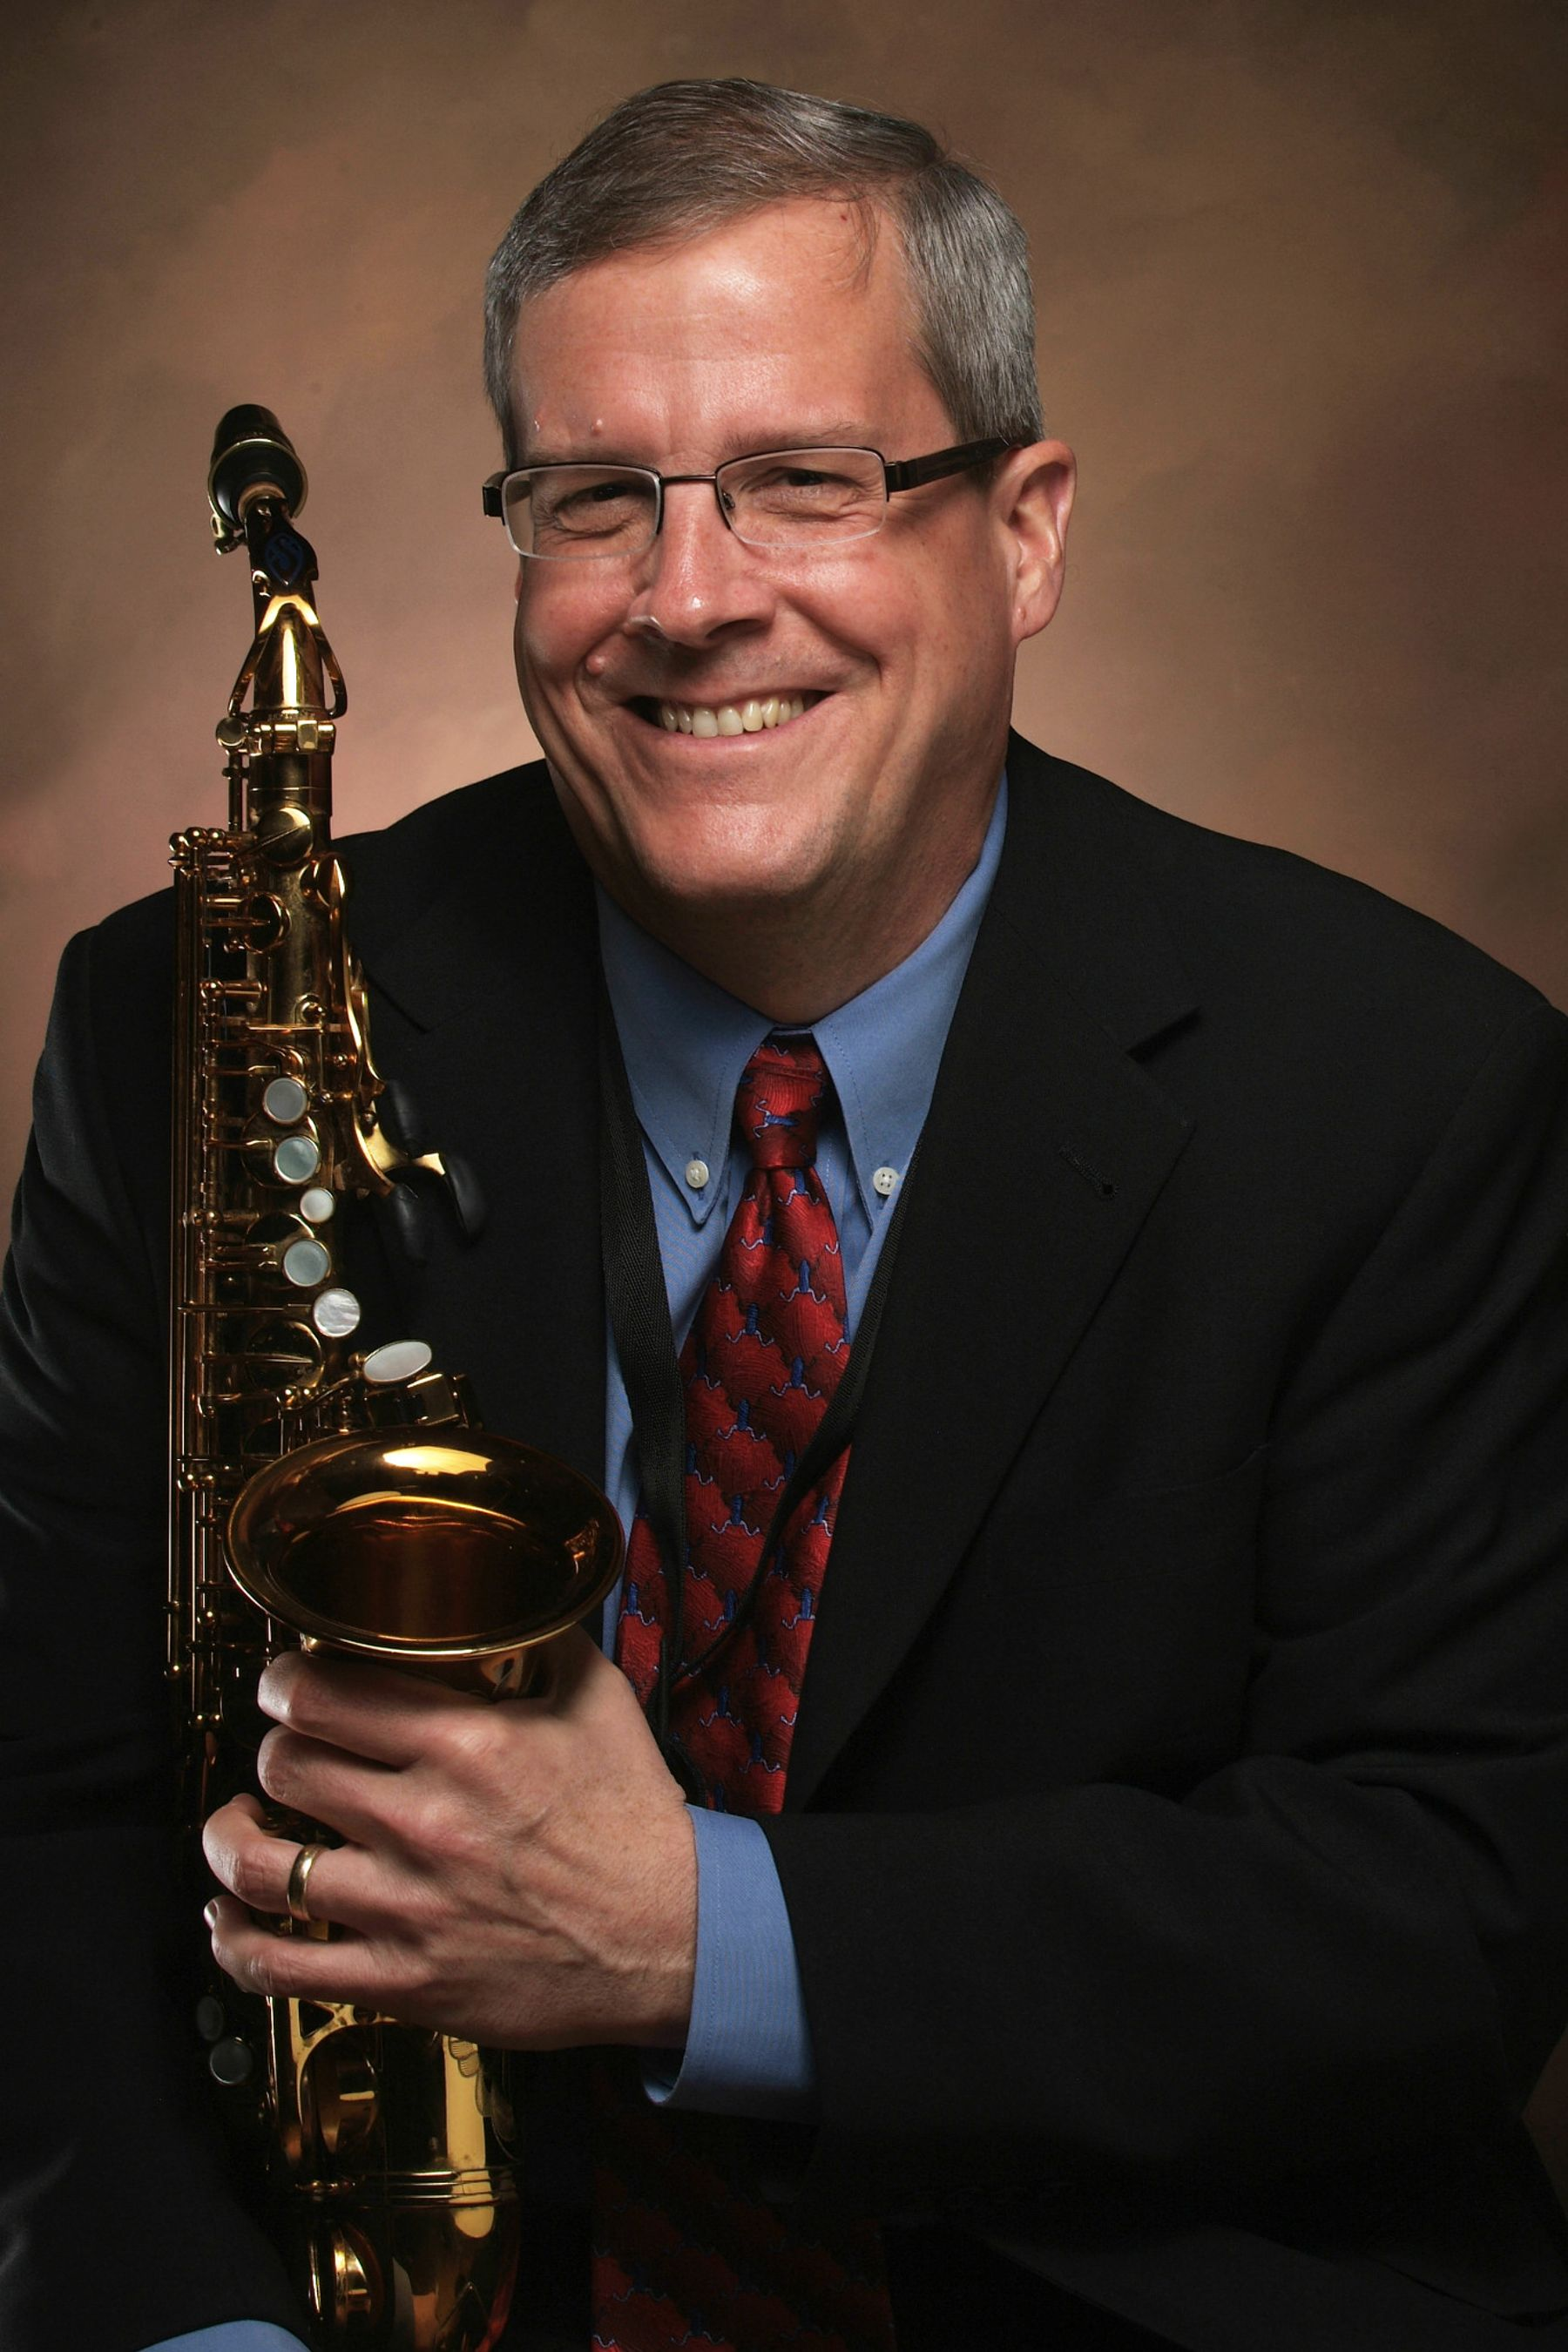 Art Bouton with saxophone